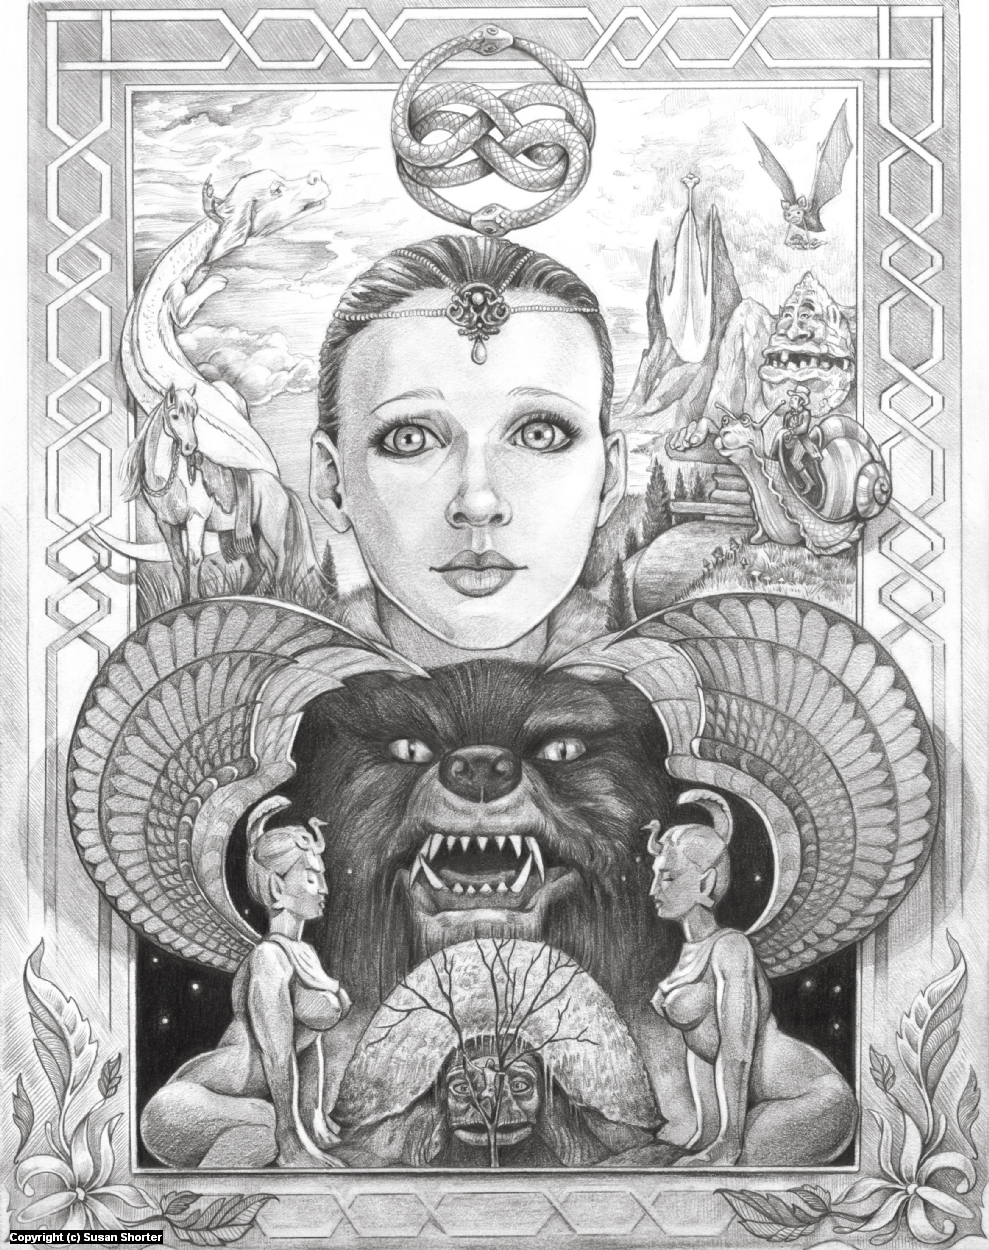 Ode to the Neverending Story Artwork by Susan Shorter